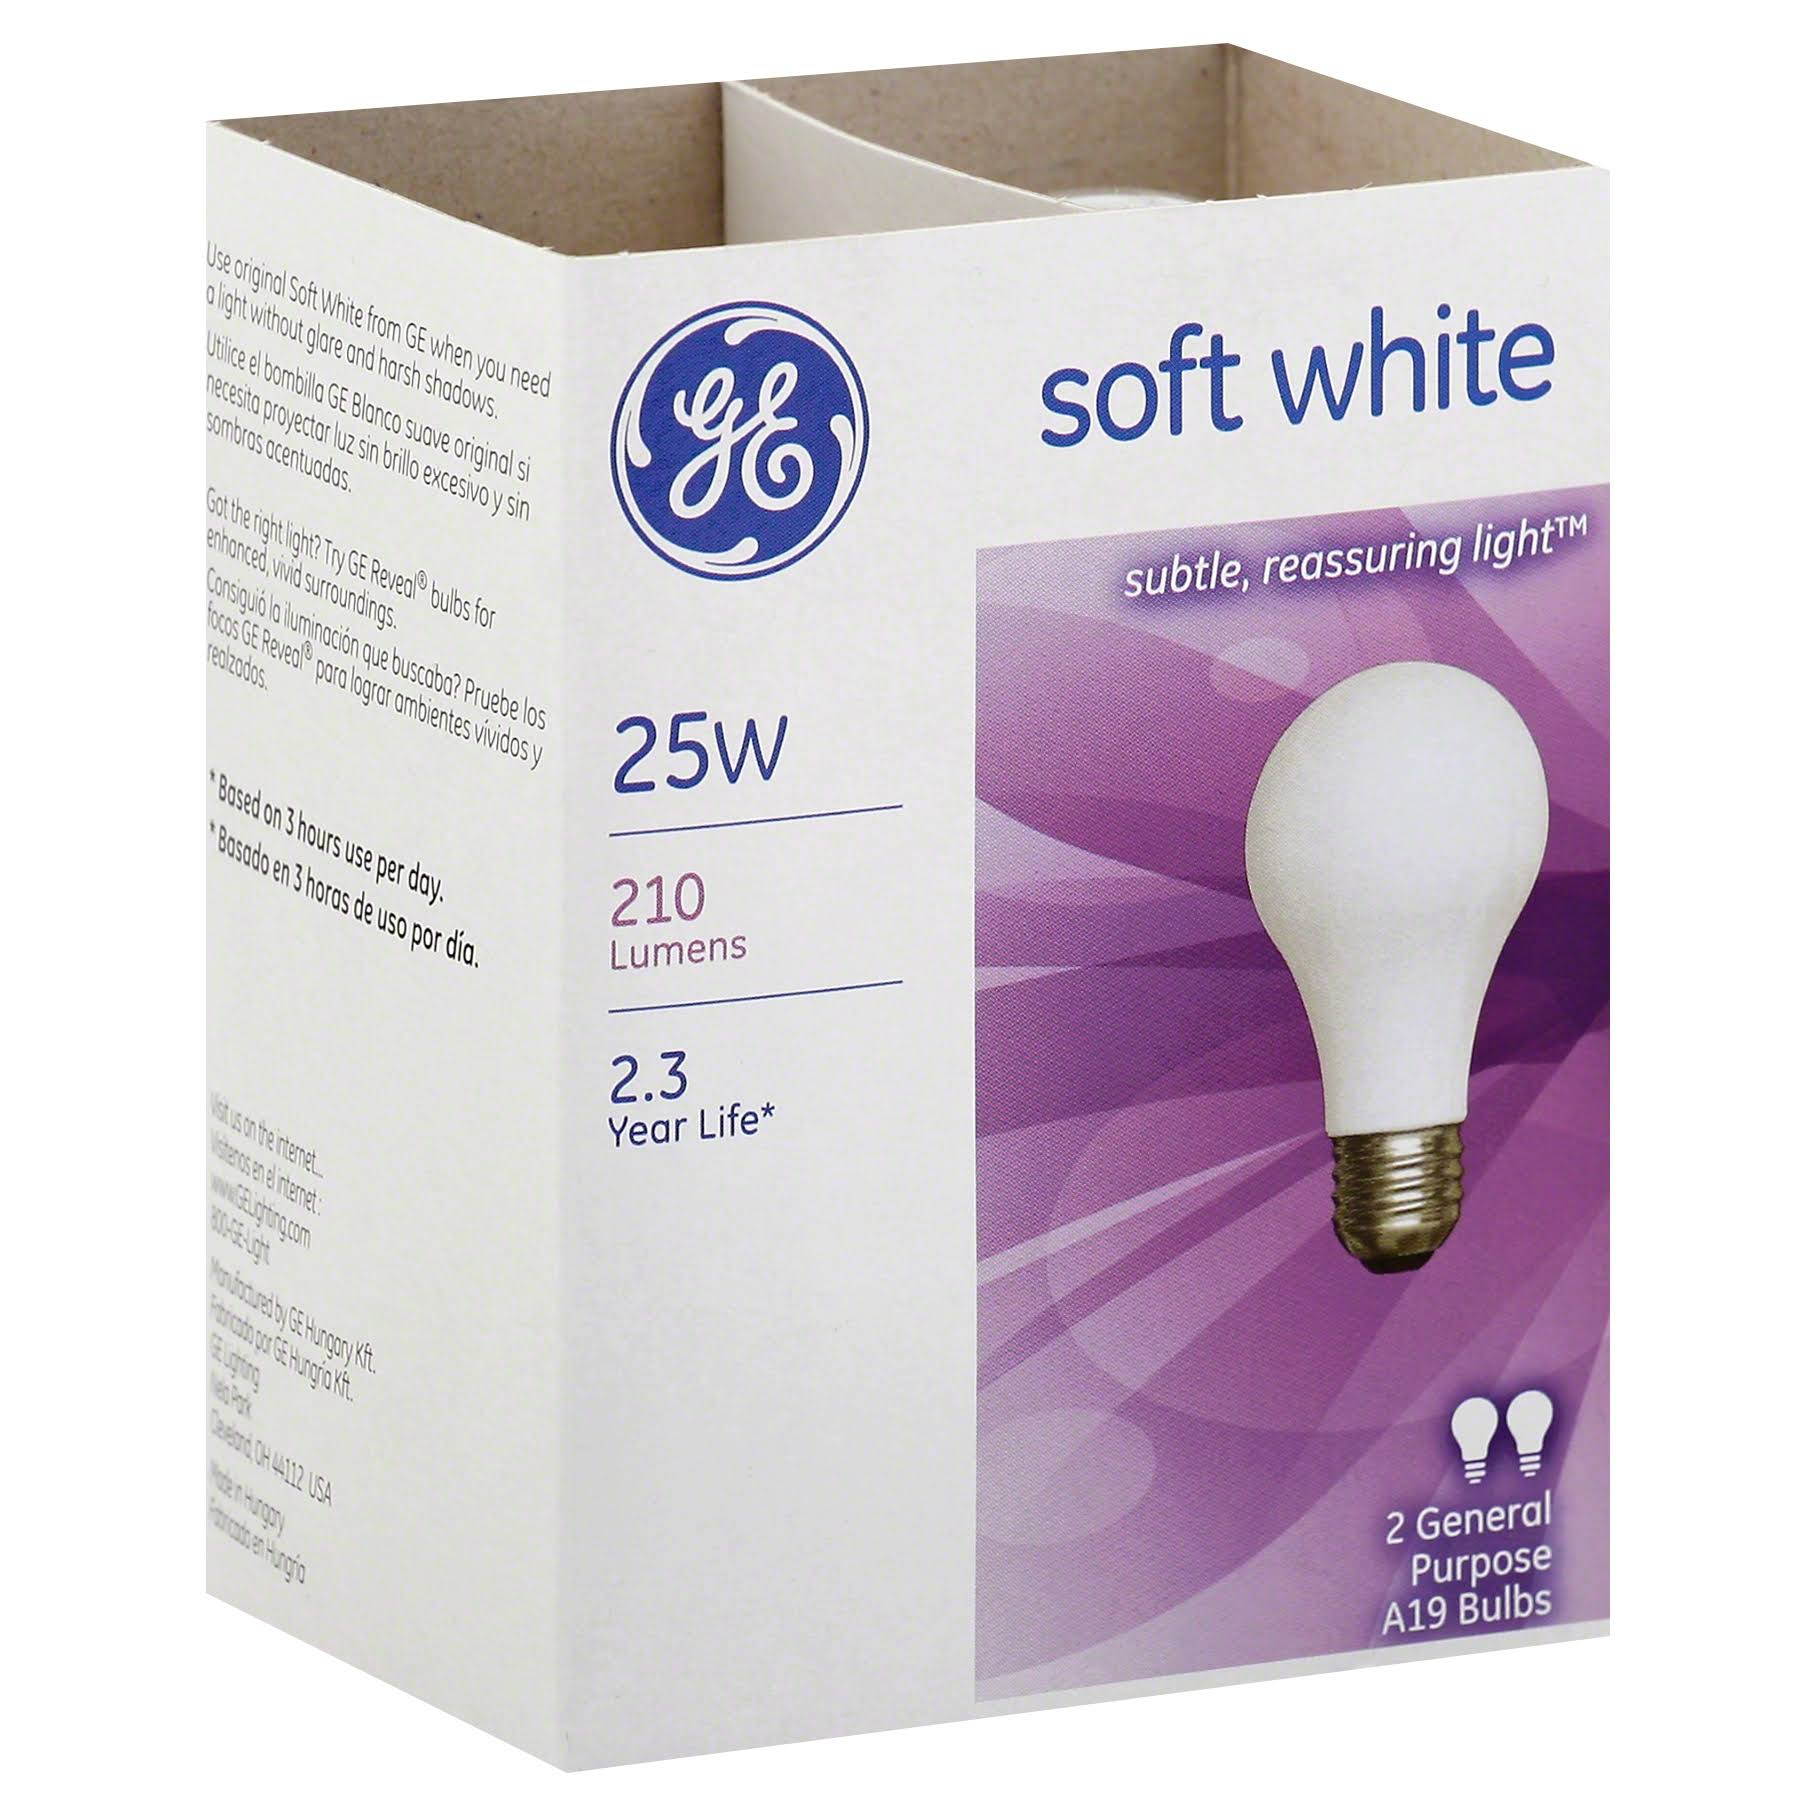 GE Light Bulb - Soft White, 25W